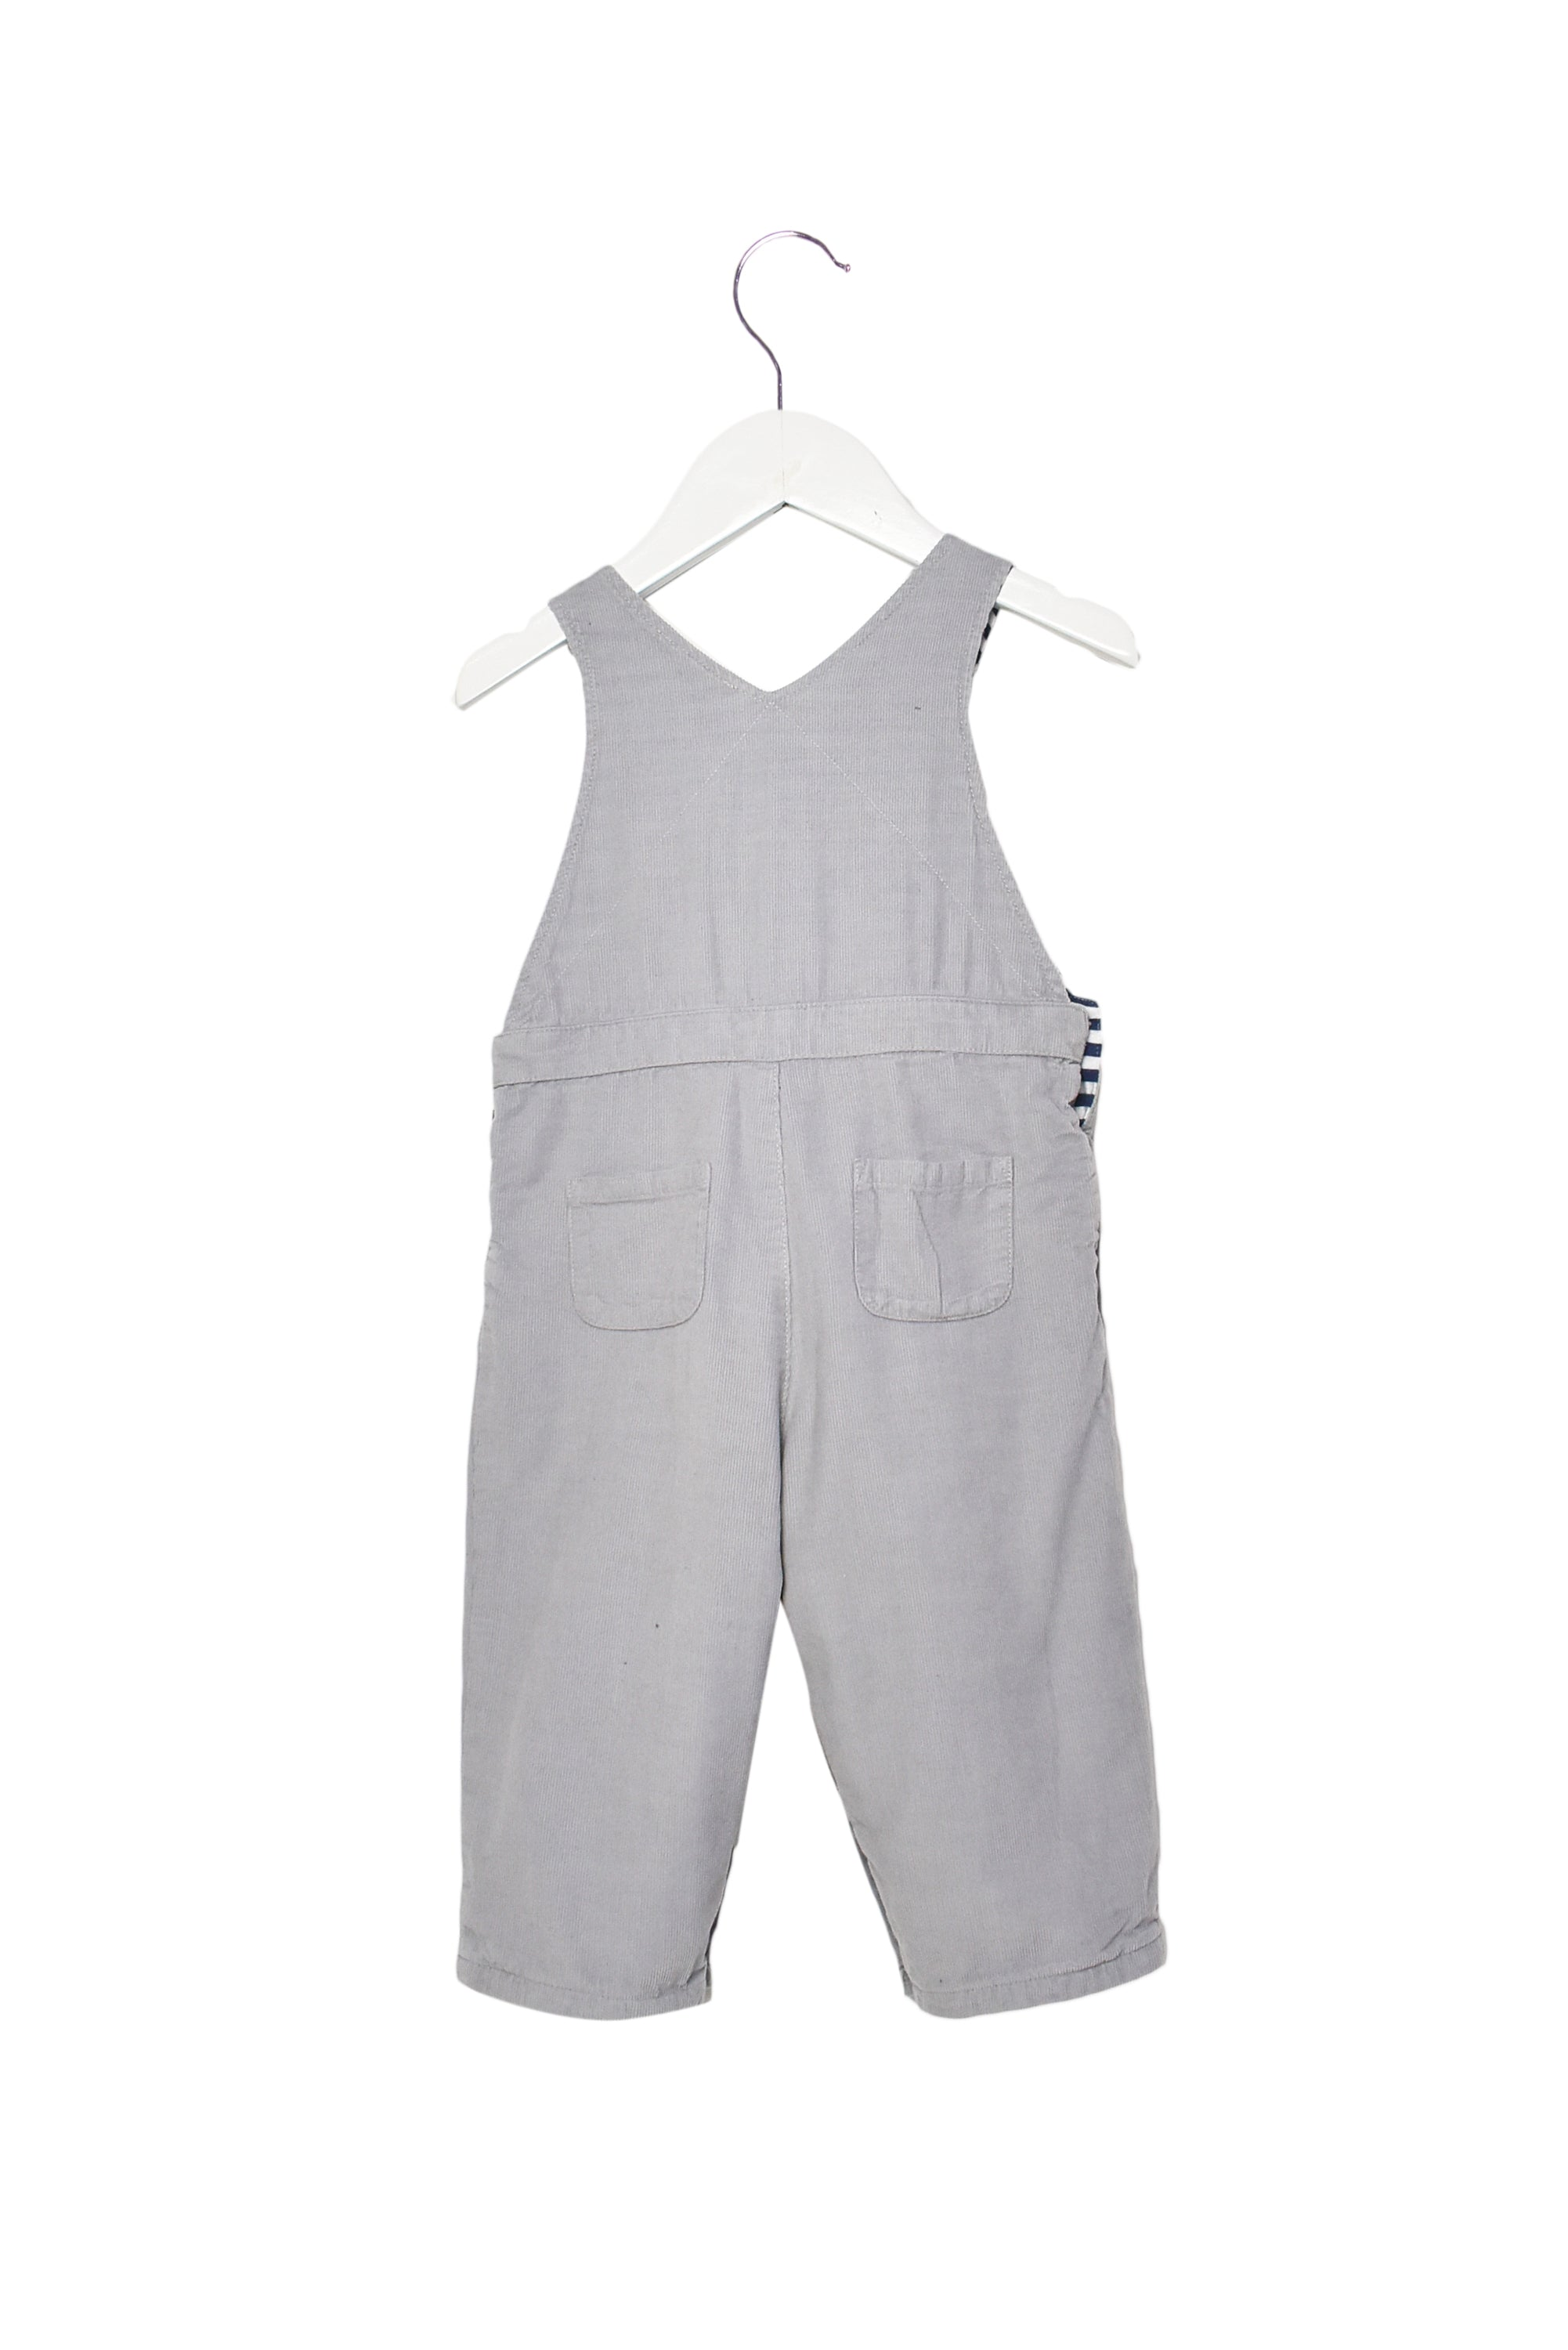 10011918 The Little White Company Baby ~ Overall 9-12M at Retykle